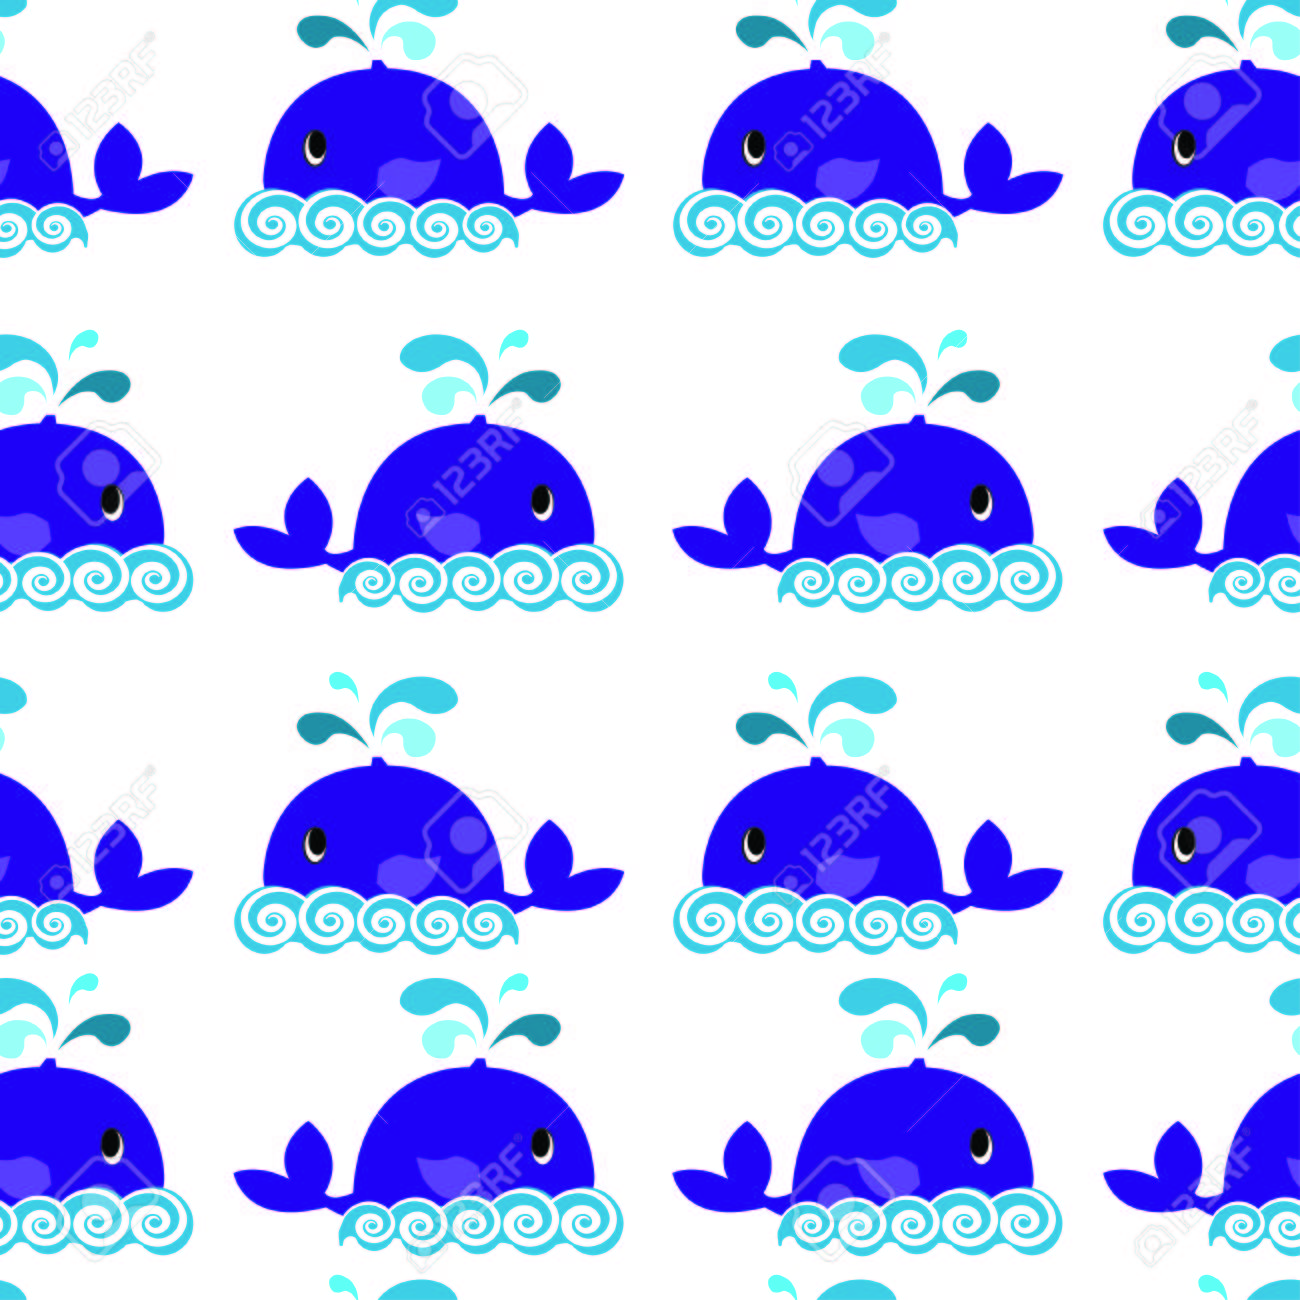 whale seamless pattern on a white background - 43088413